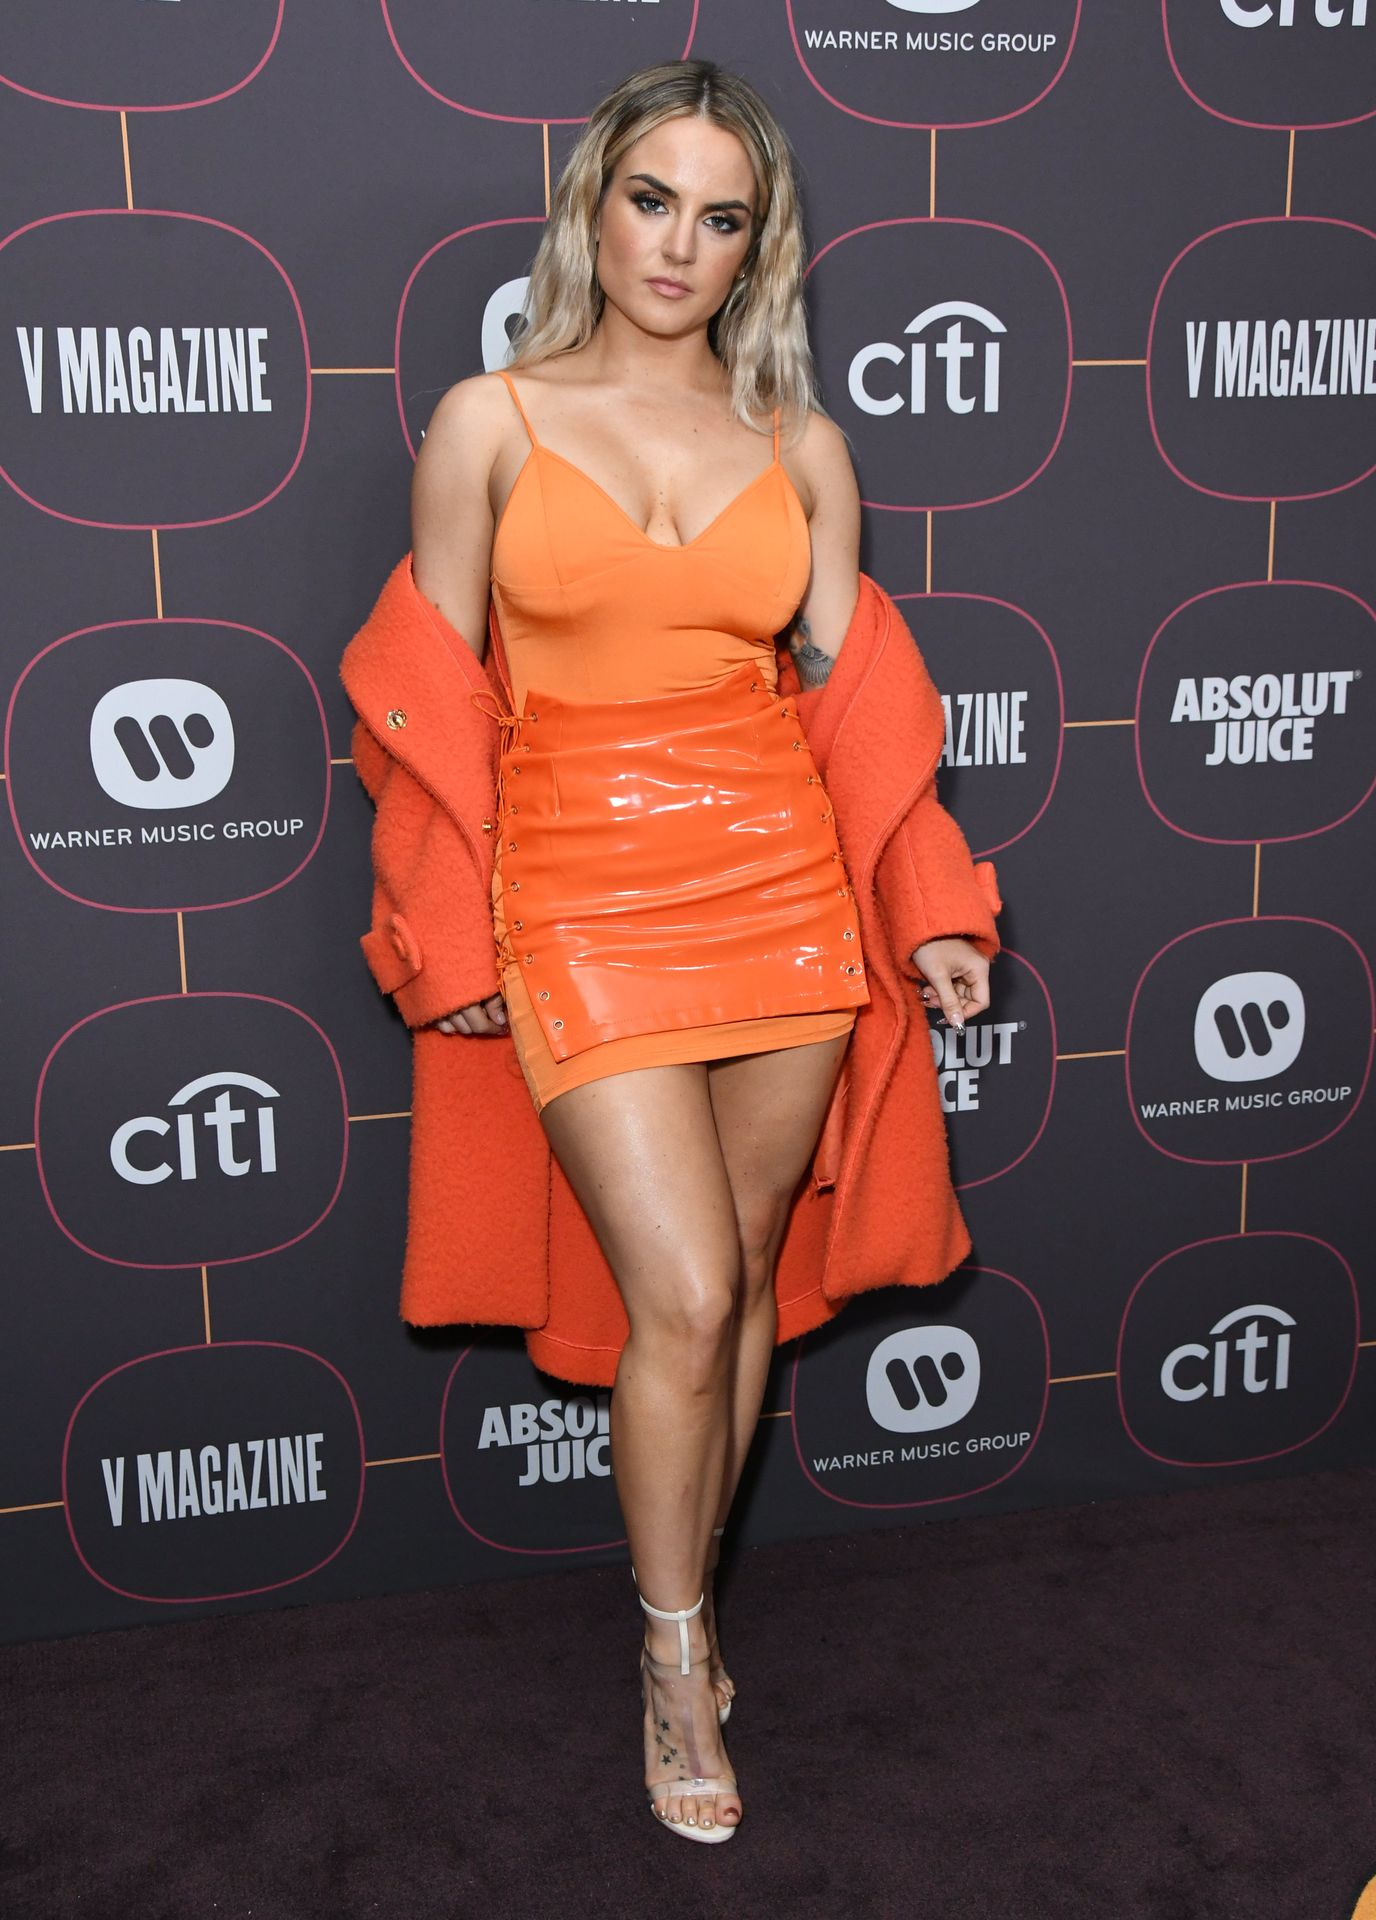 Jojo Shows Off Her Tits At The Warner Music Group Pre Grammy Party In Hollywood 0034